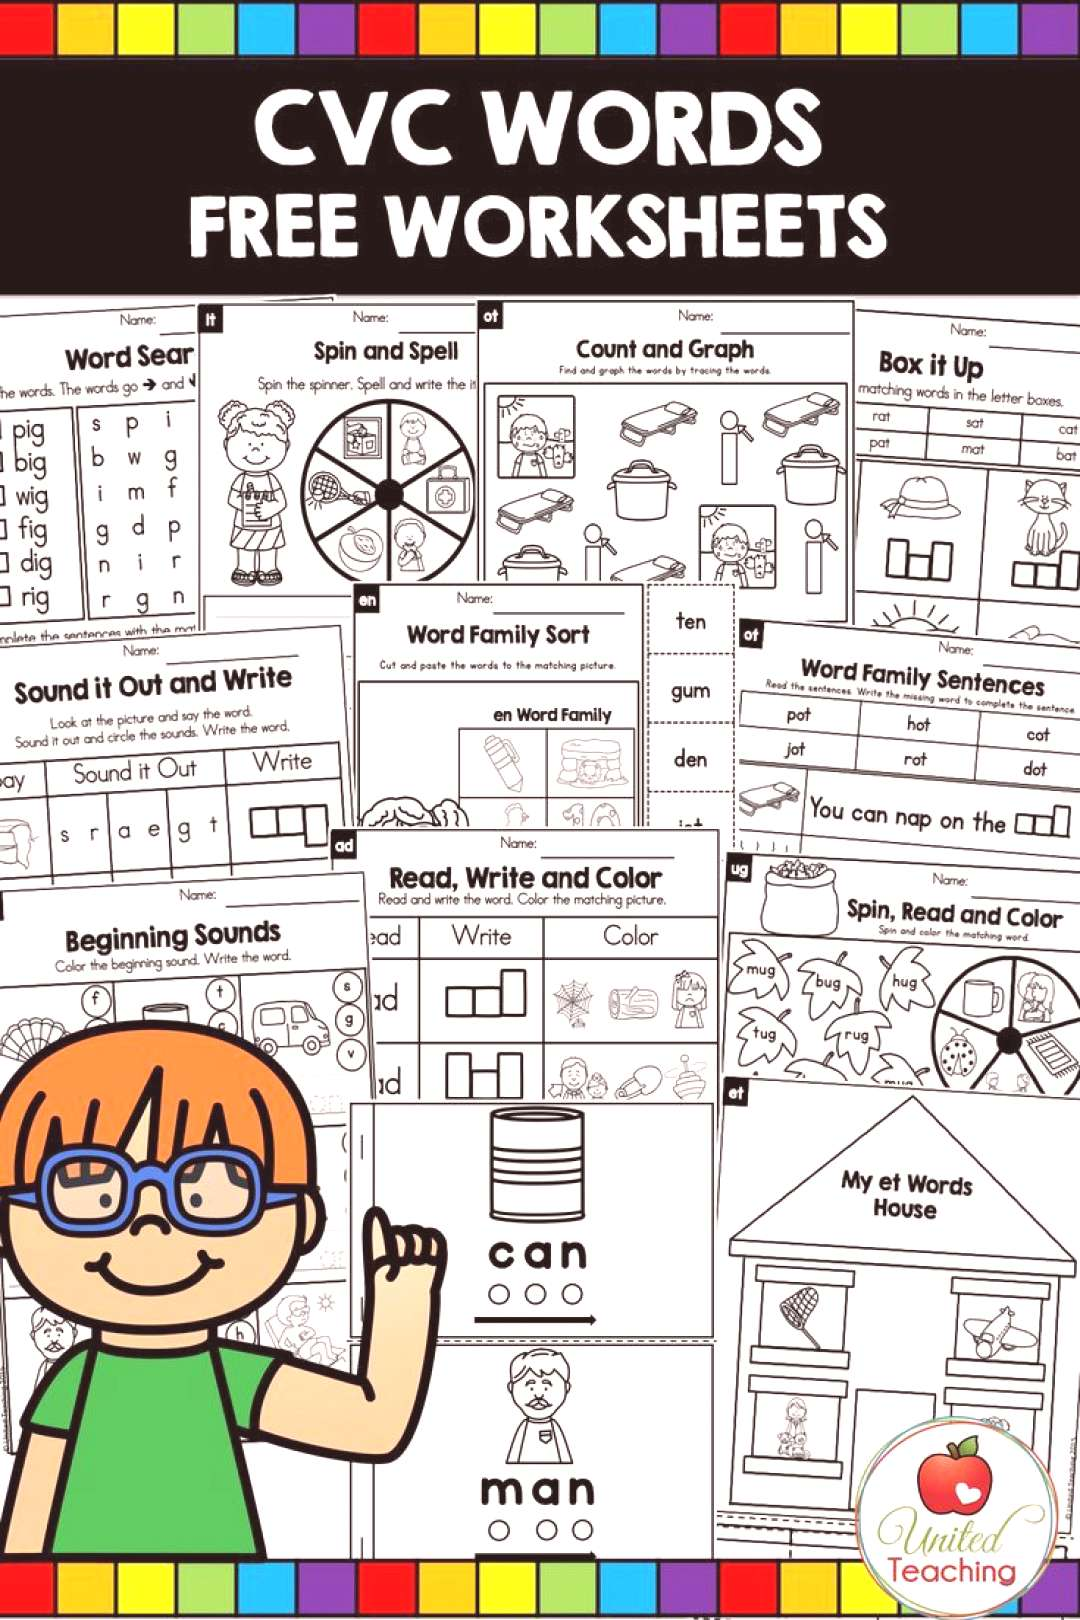 CVC Words Worksheets FREE The CVC word work bundle contains fun and engaging activities for learnin